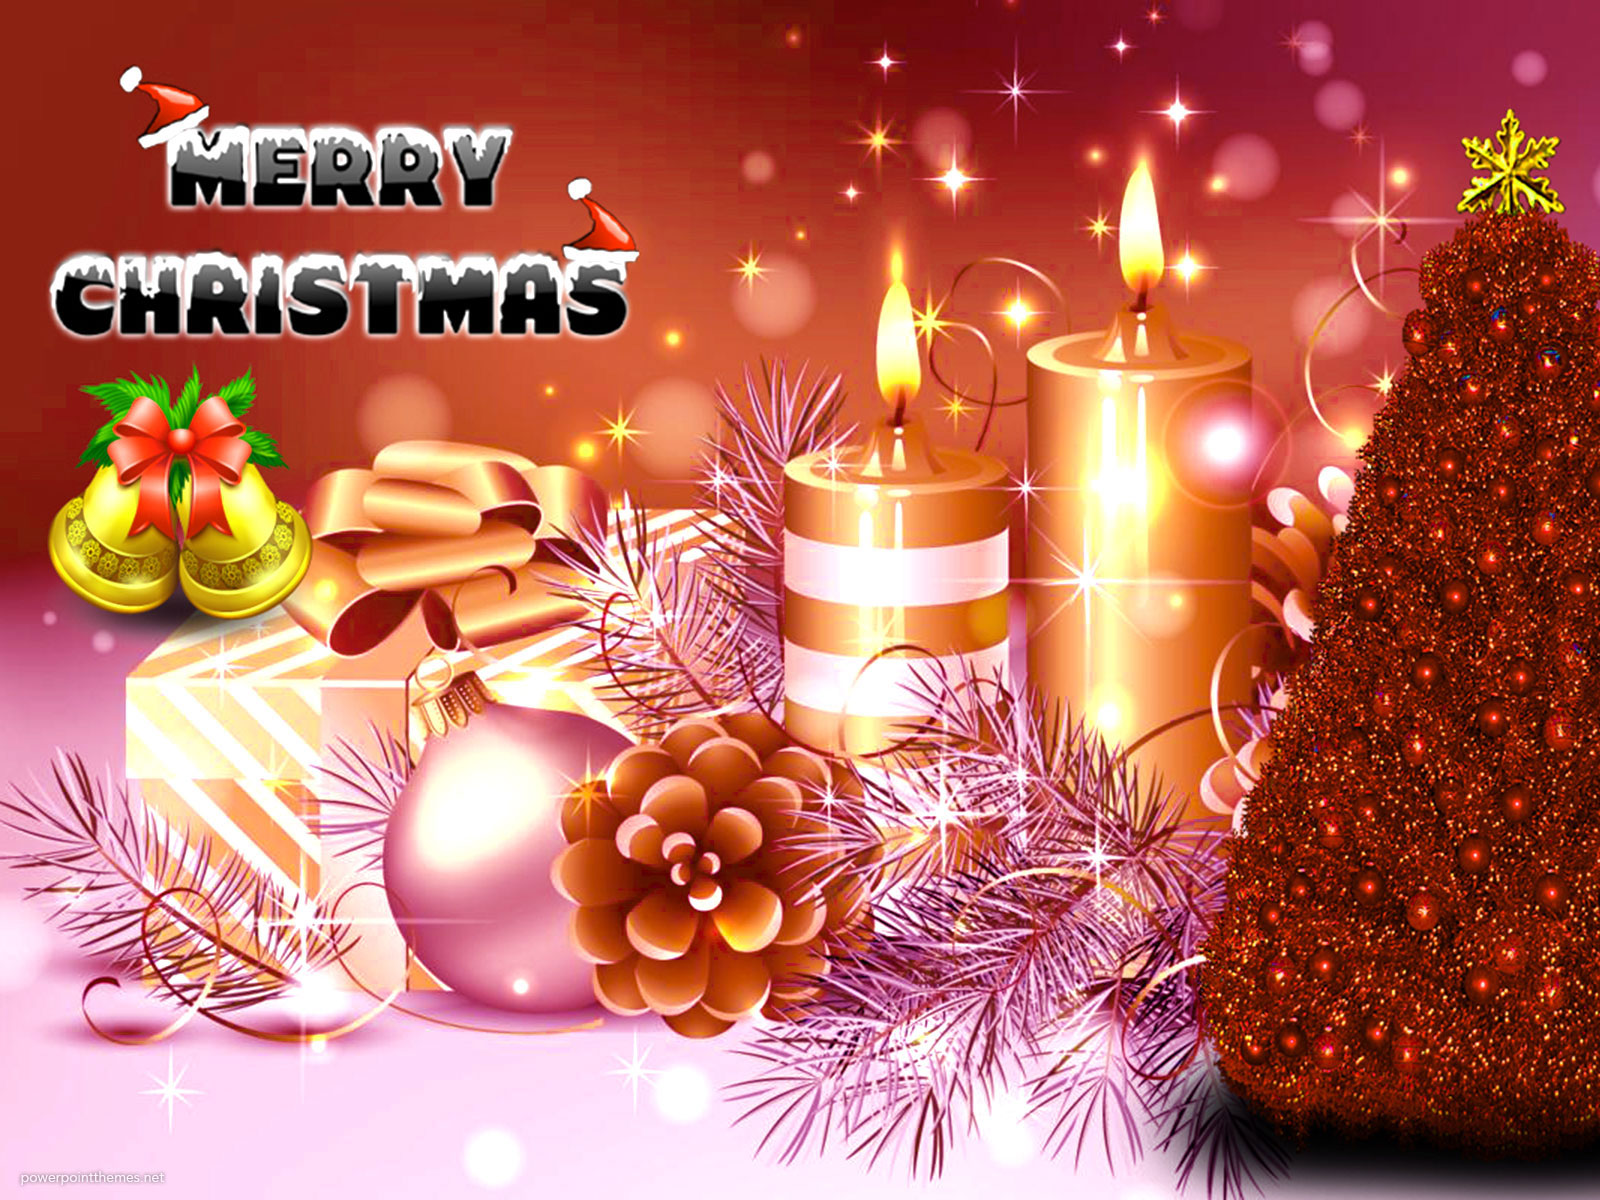 Merry Christmas Tree PowerPoint Background